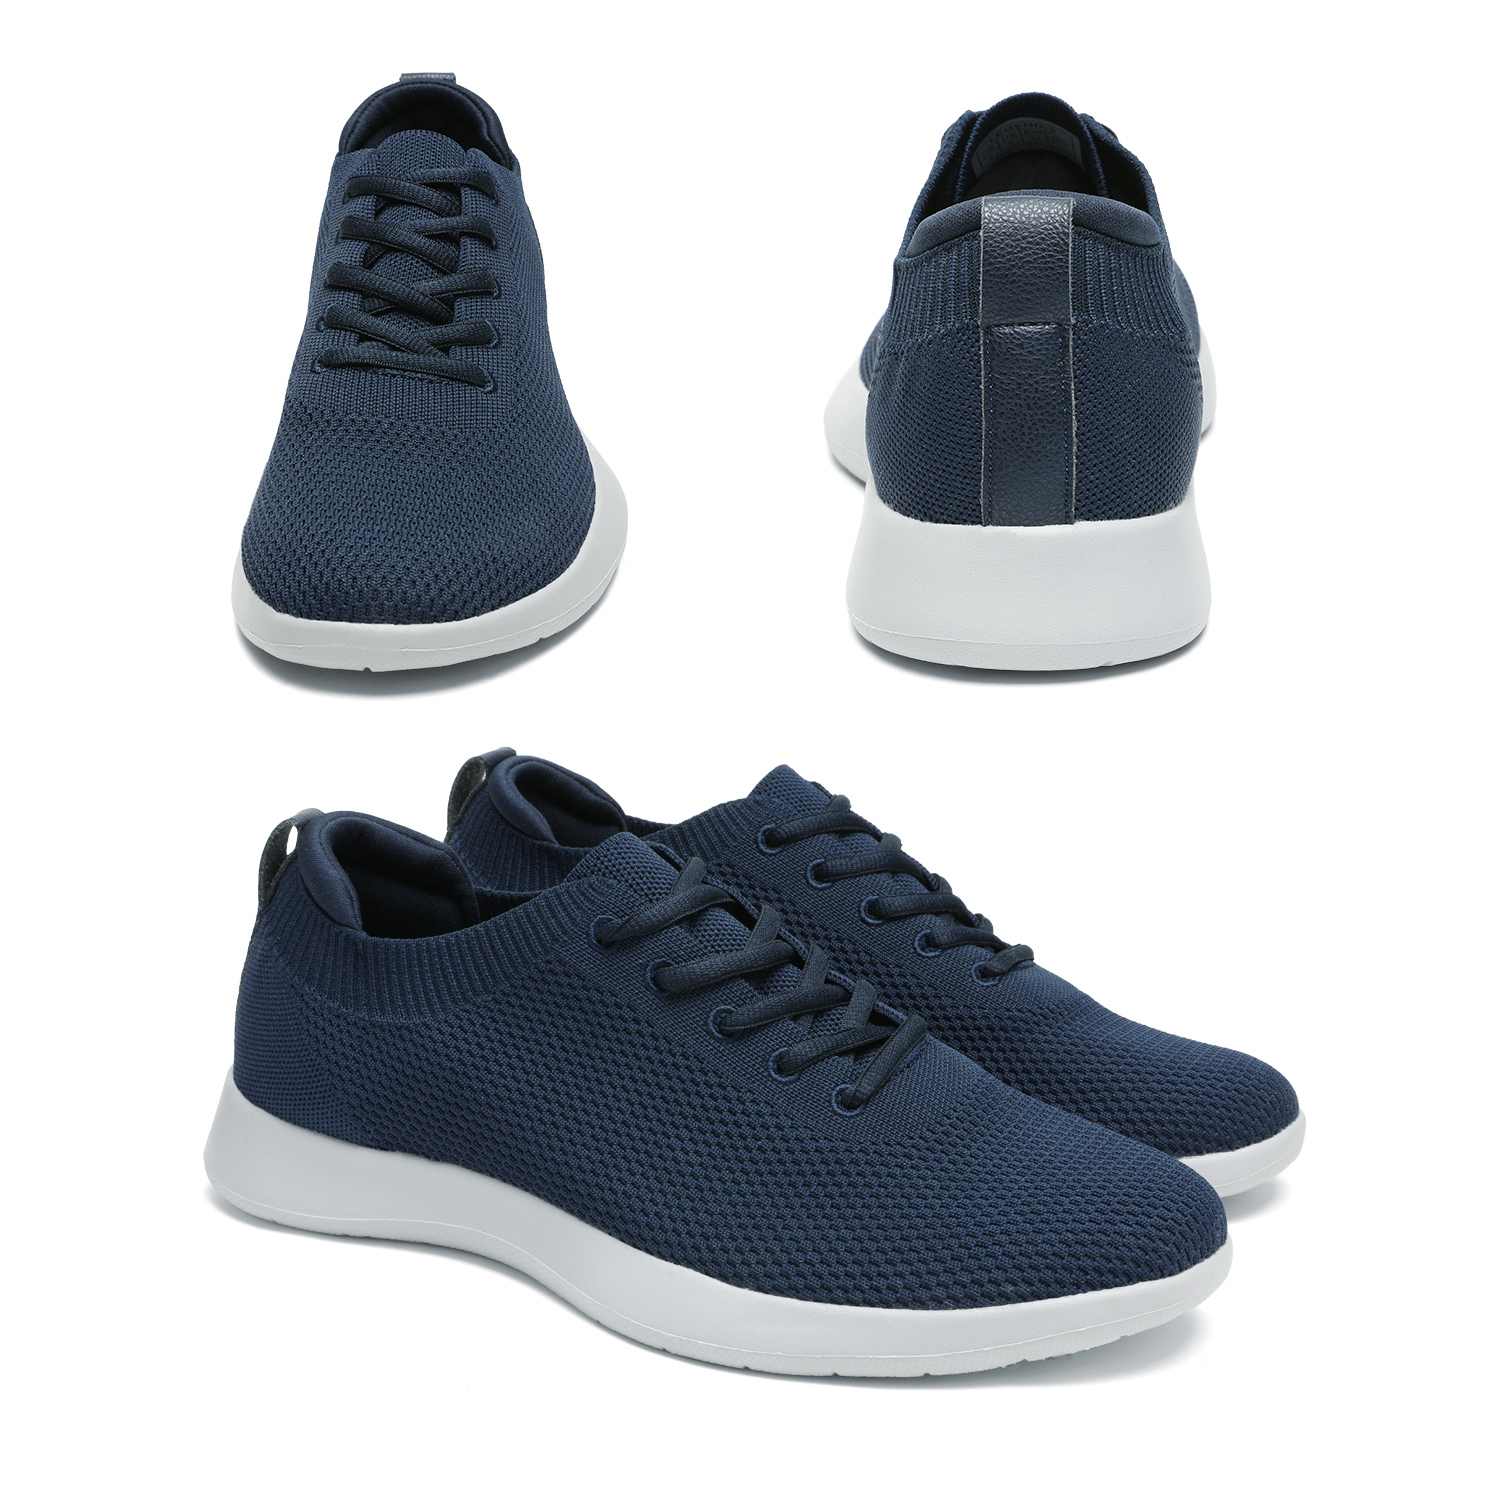 thumbnail 25 - Bruno Marc Mens Walking Shoes Breathable Fashion Sneaker Casual Shoe Size 6.5-13